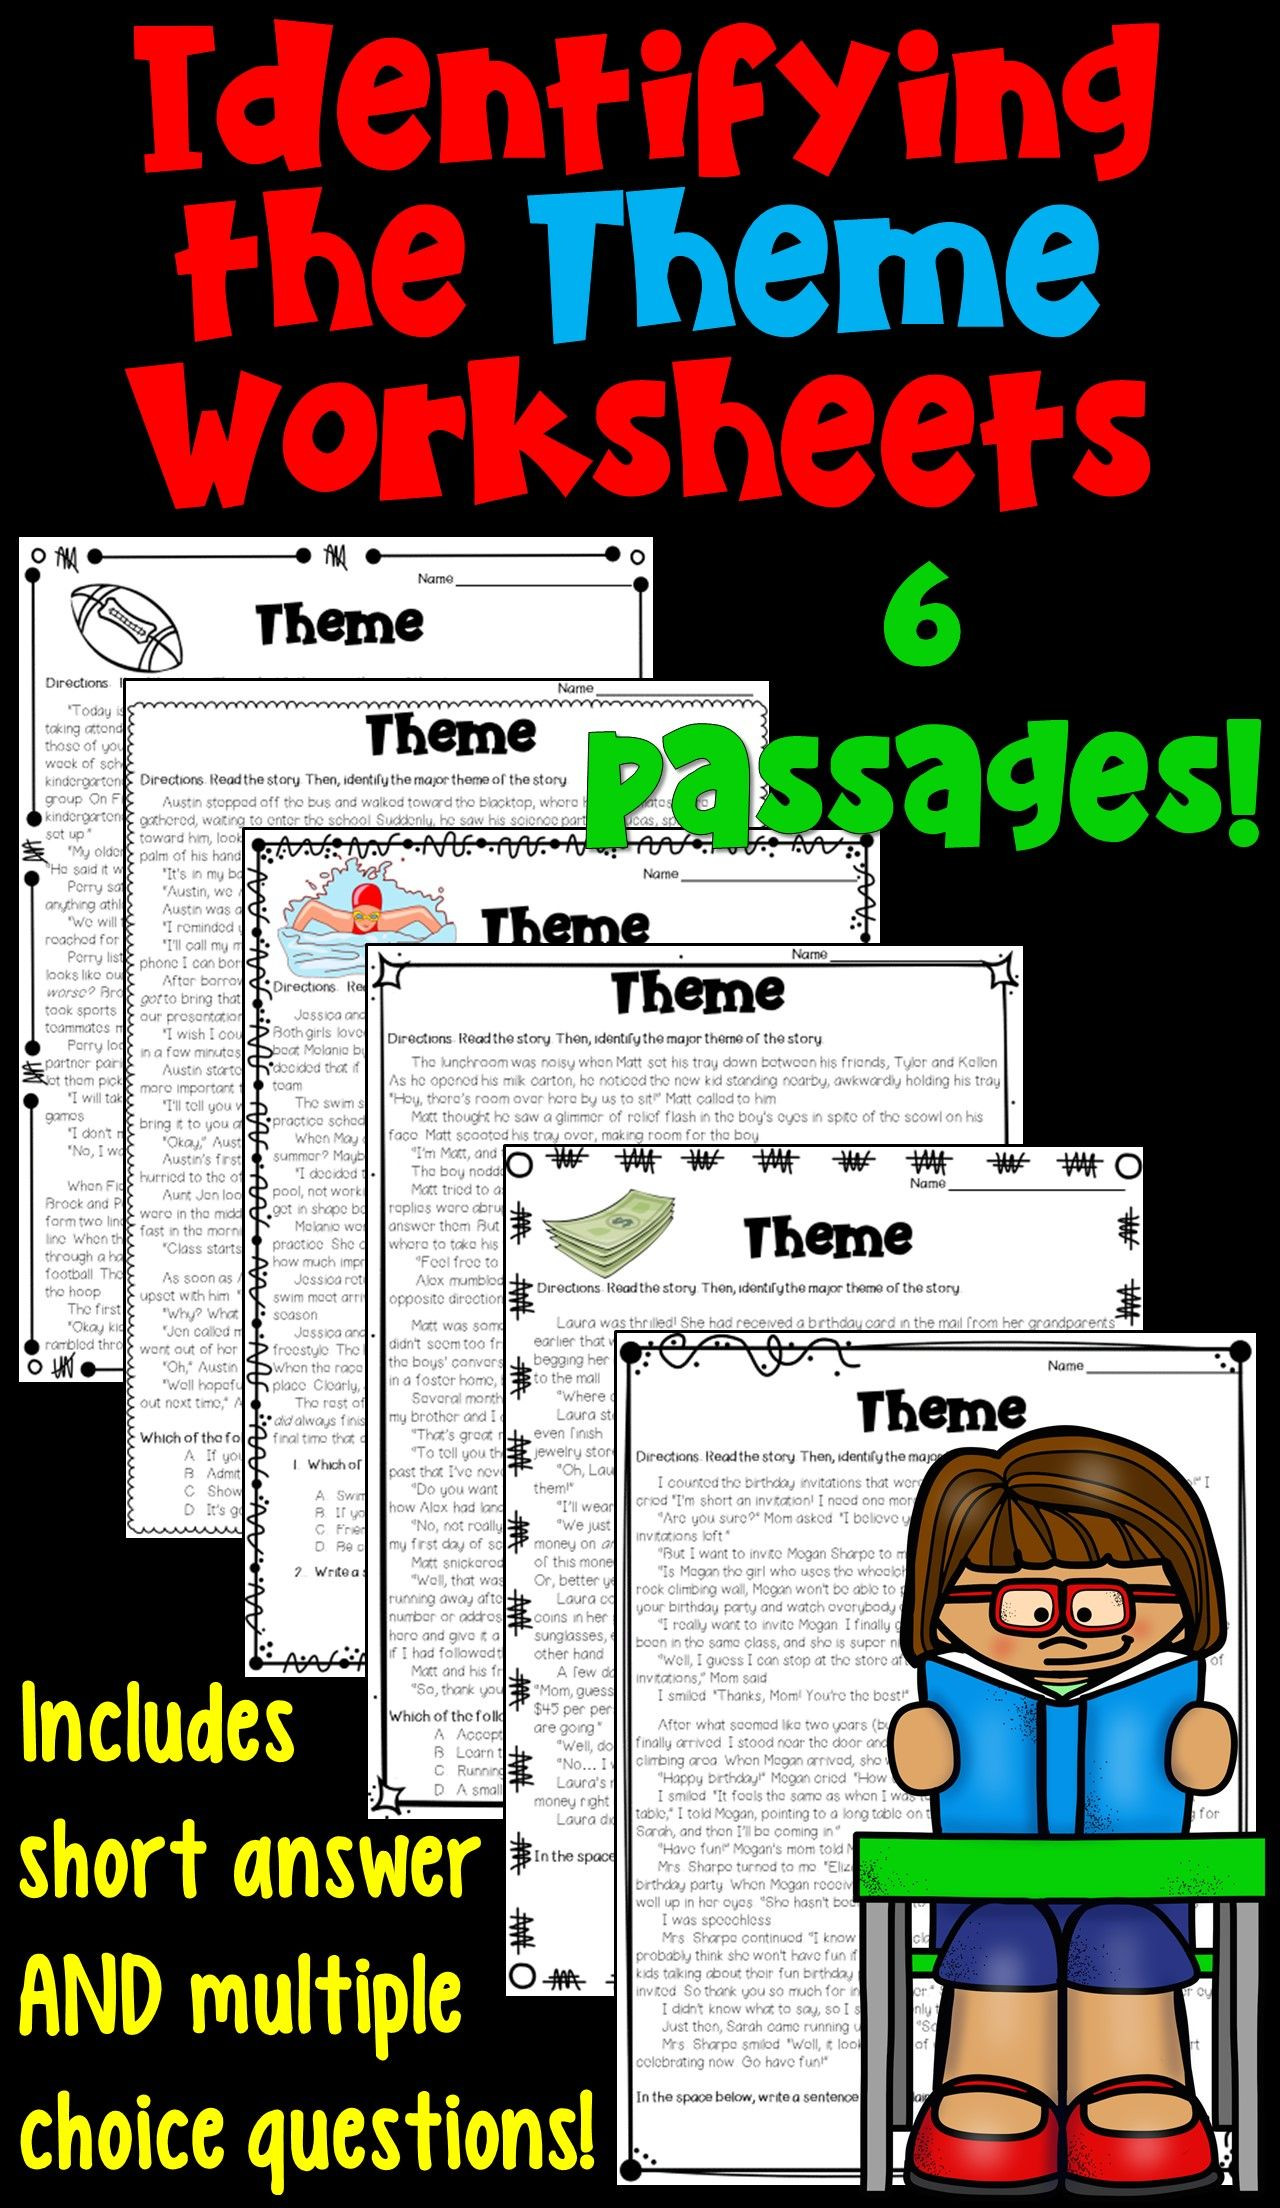 Theme Worksheets Middle School Pdf themes In Literature Worksheets Pdf and Digital